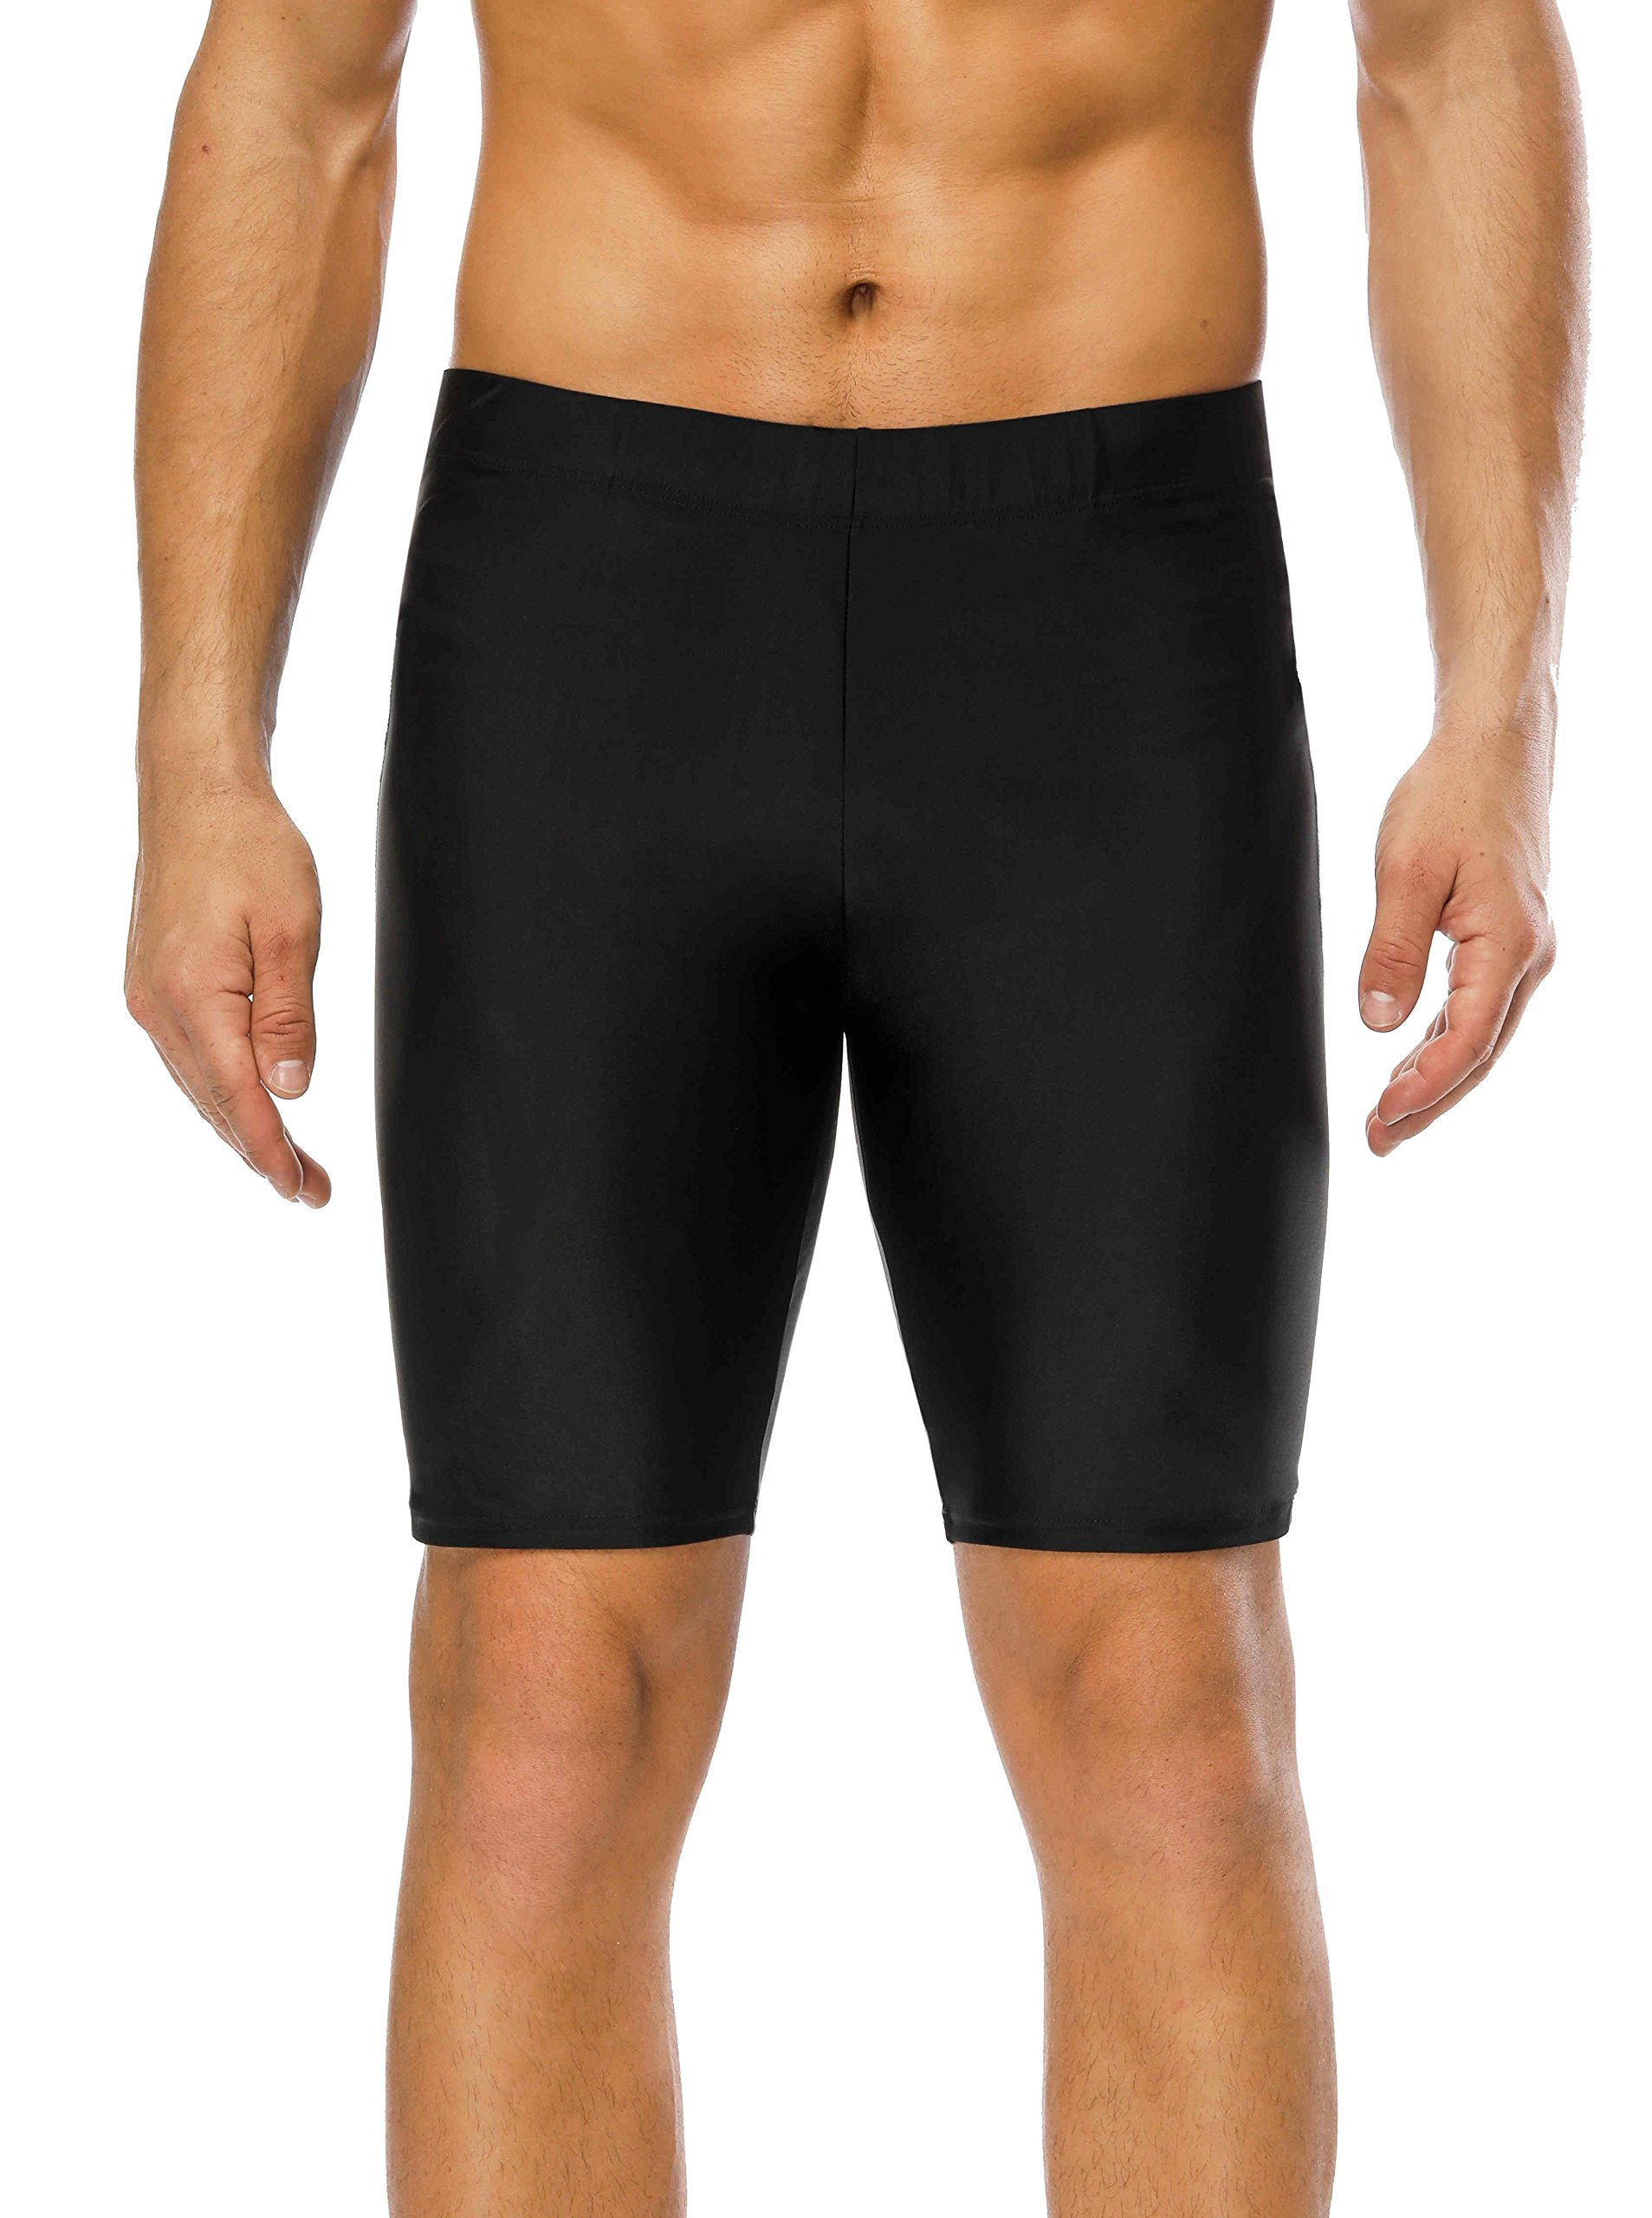 belamo Training Jammer pro Swimming Suits Solid Swimming Shorts for Men 32 by belamo